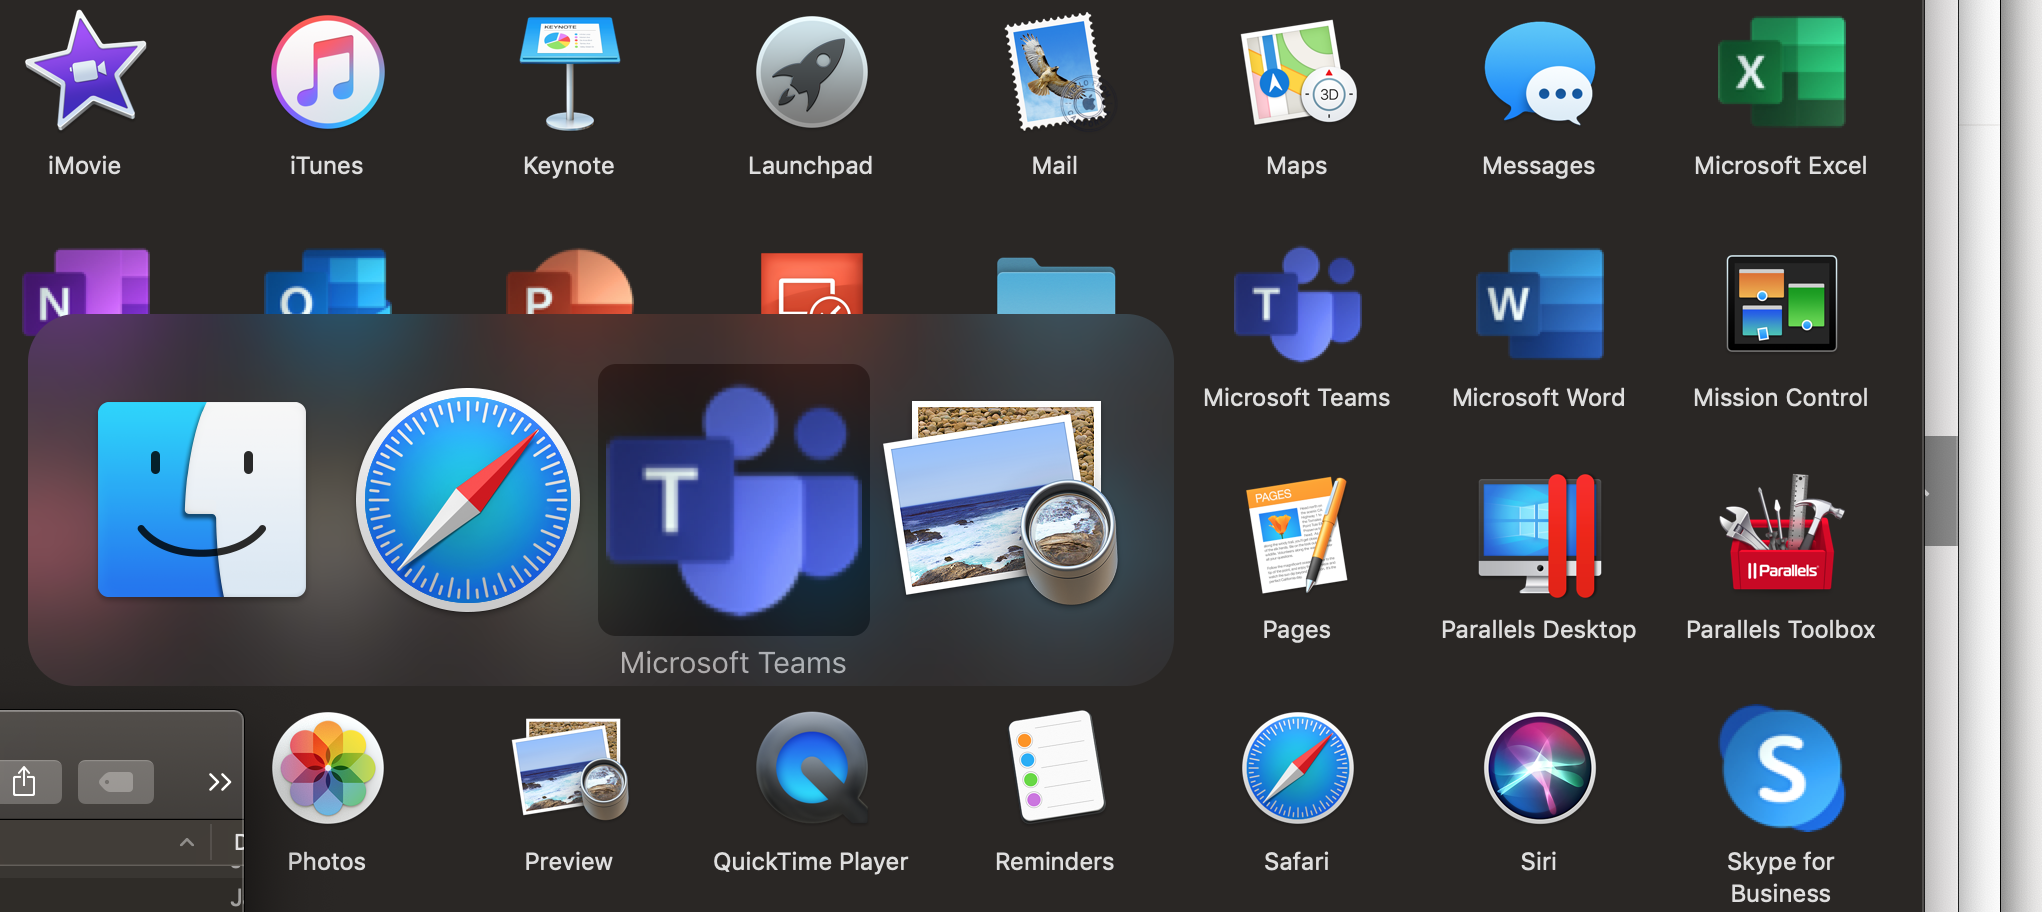 Office 365 New Icons on macOS - Microsoft Tech Community